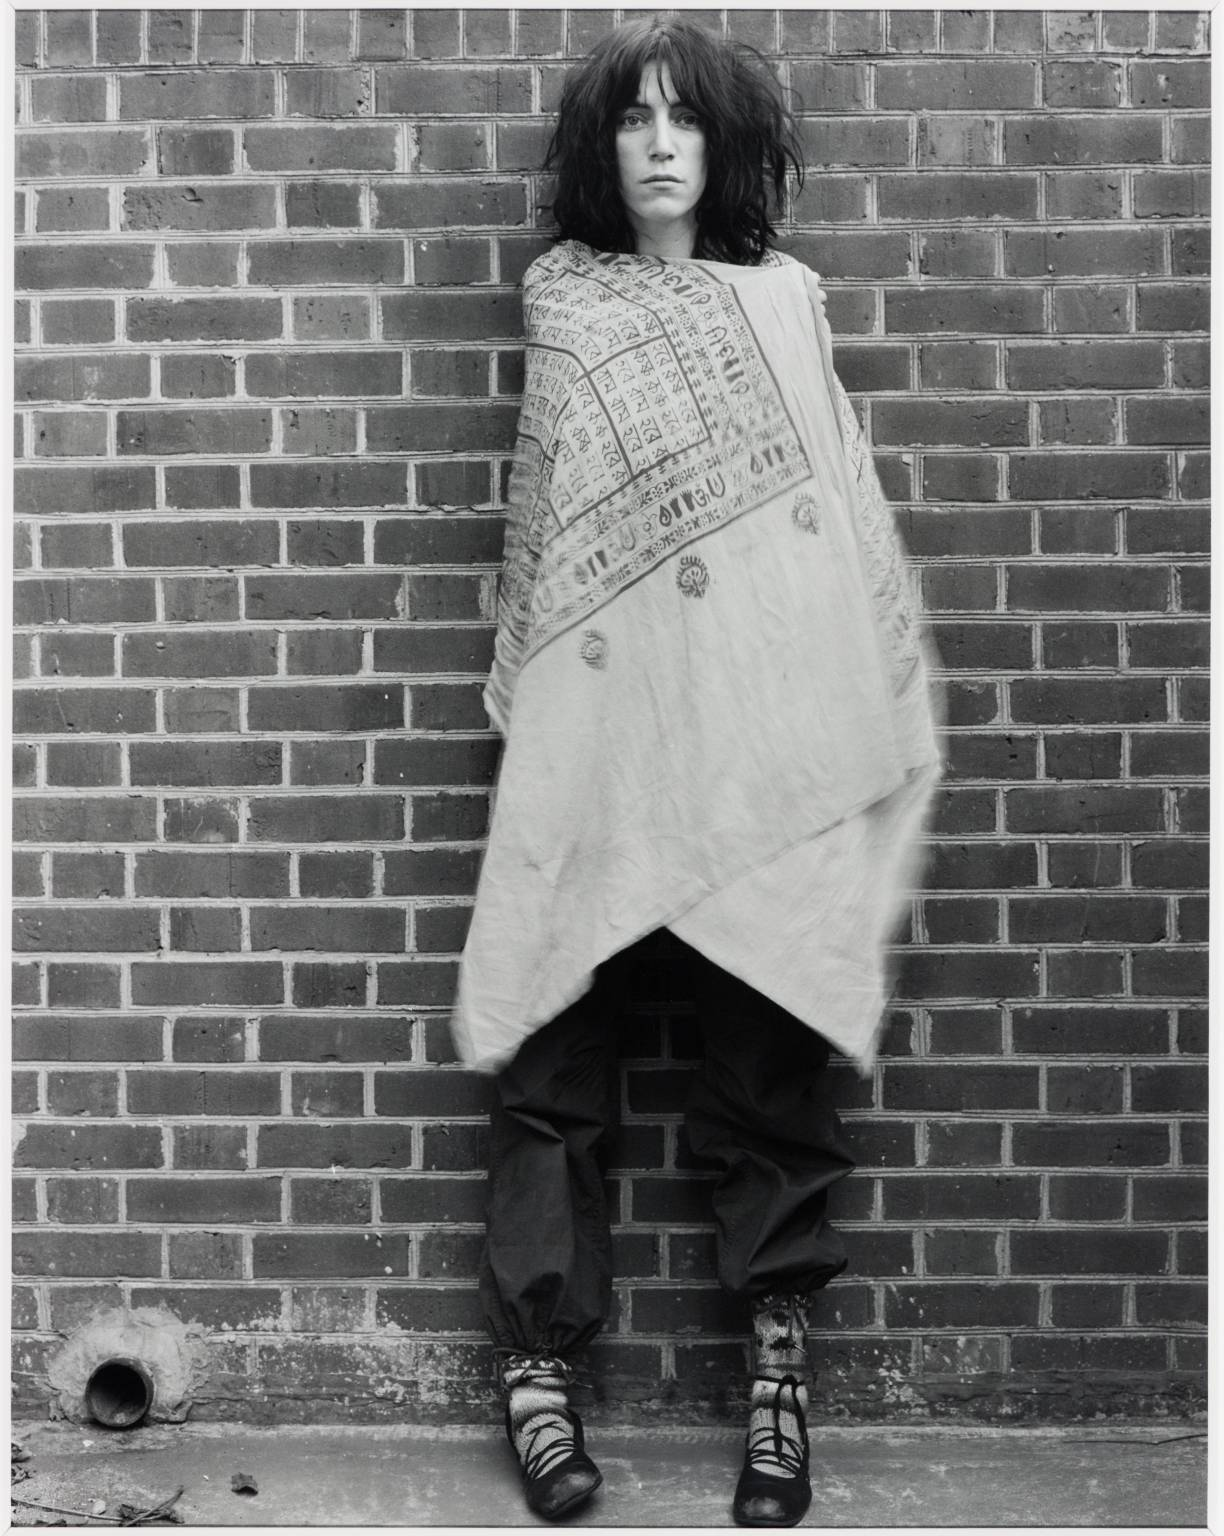 Patti Smith en 1978, © Robert Mapplethorpe Foundation